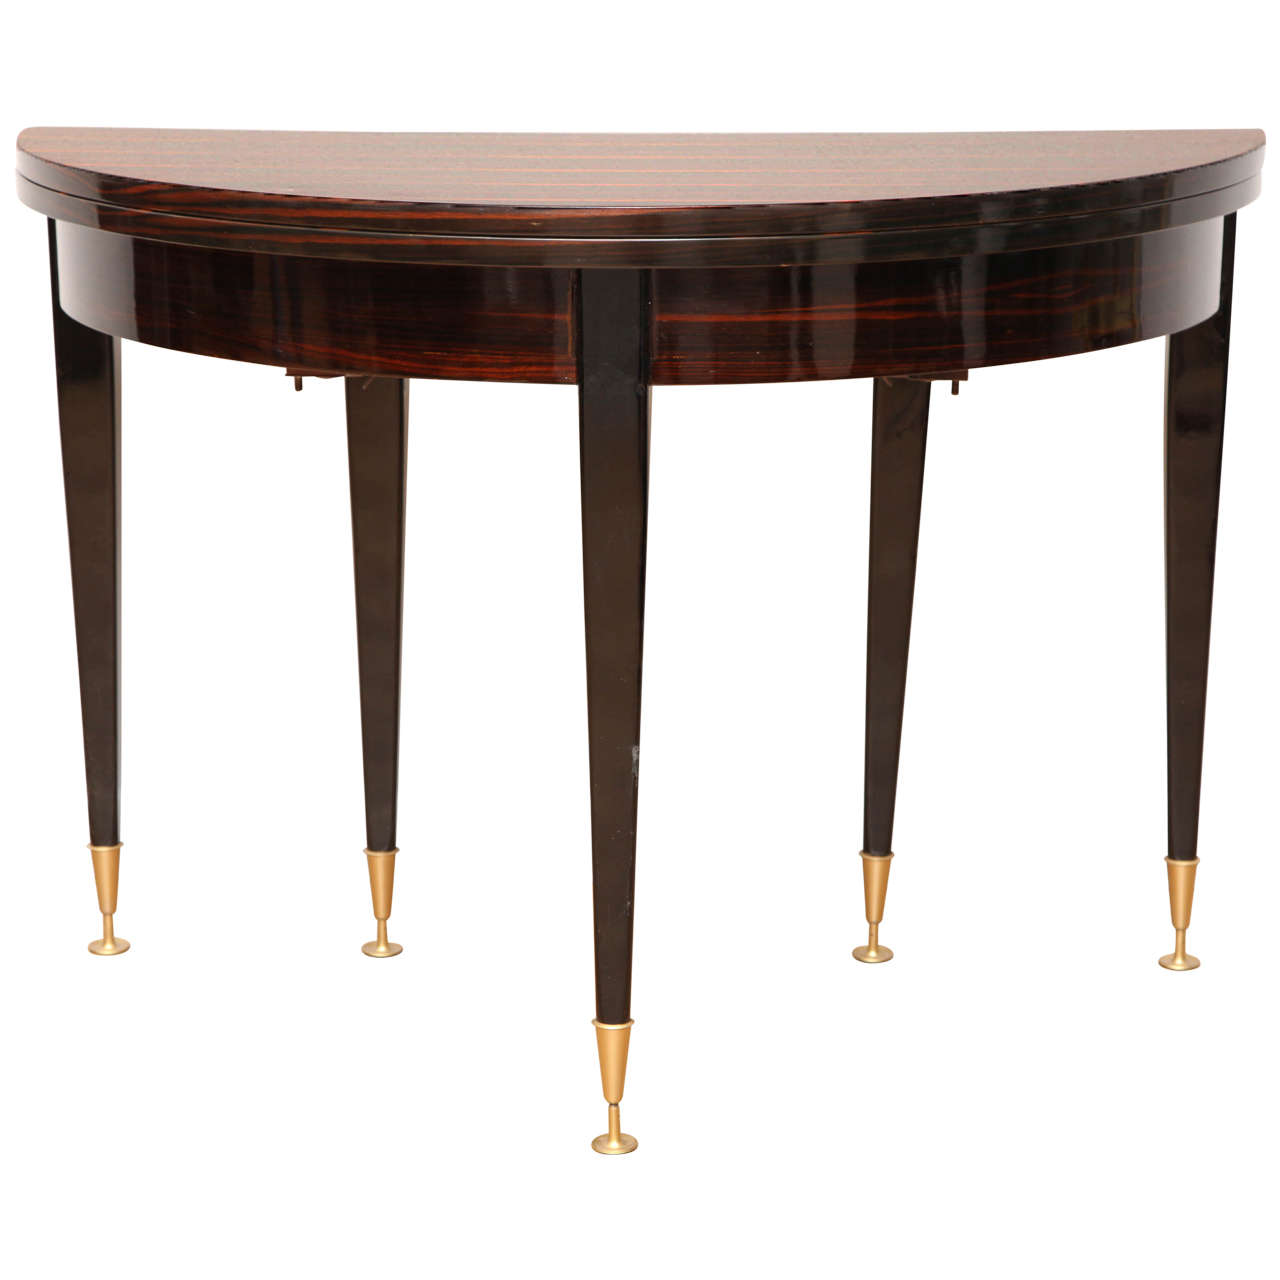 Fabulous art deco round expandable dining table at 1stdibs - Art deco dining room table ...